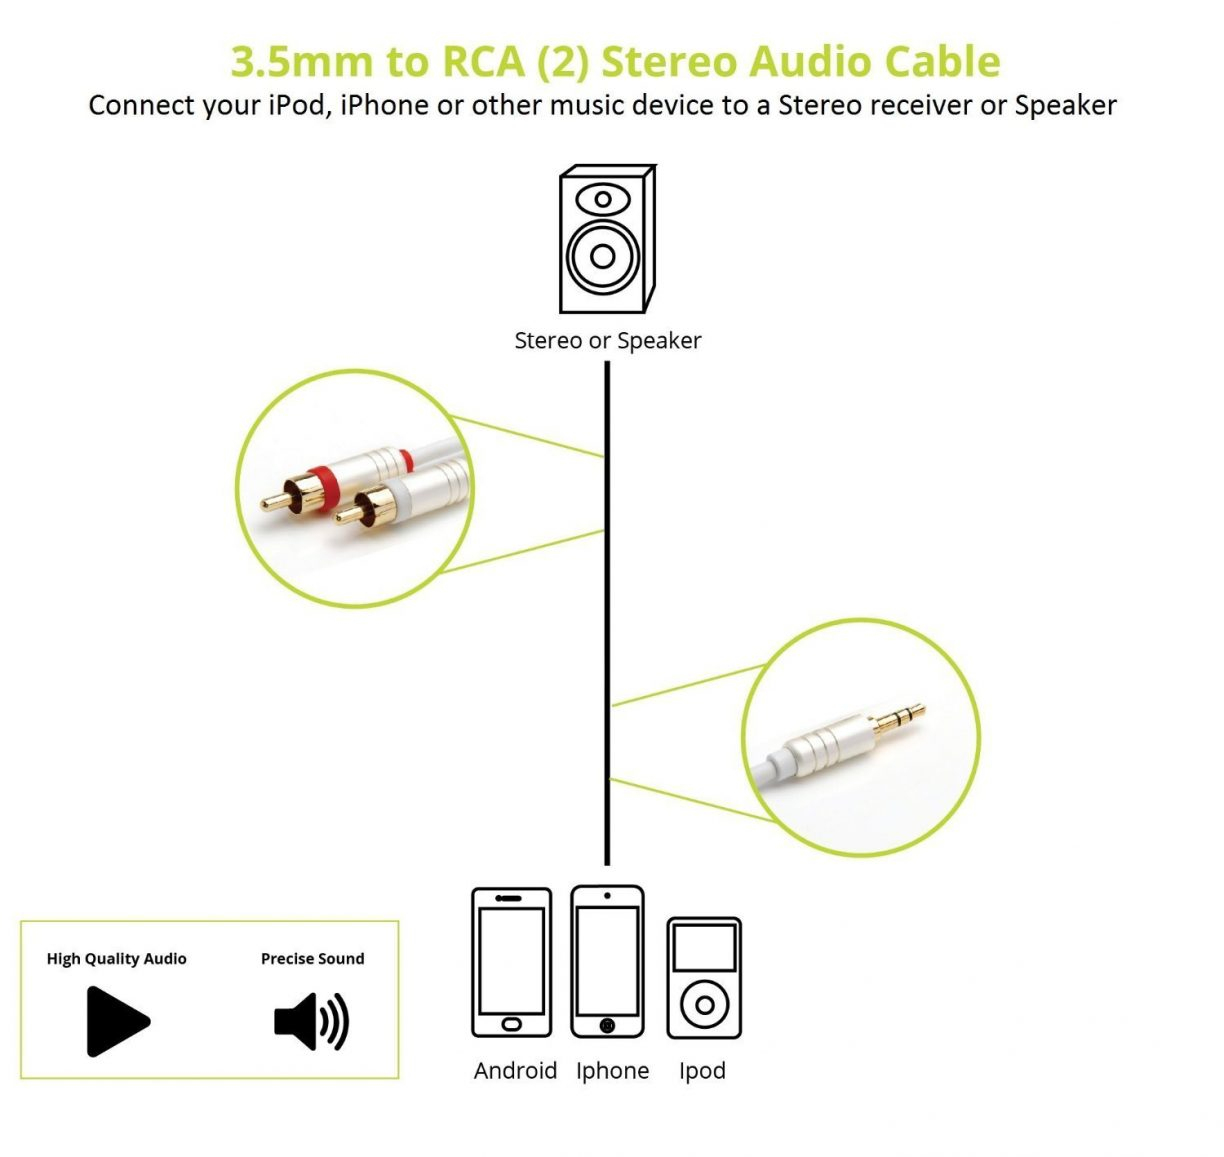 Audio Cable Wiring Diagram Mfi Lightning Jack Adapter Ipod Wiringam - Usb Lightening Cable Wiring Diagram